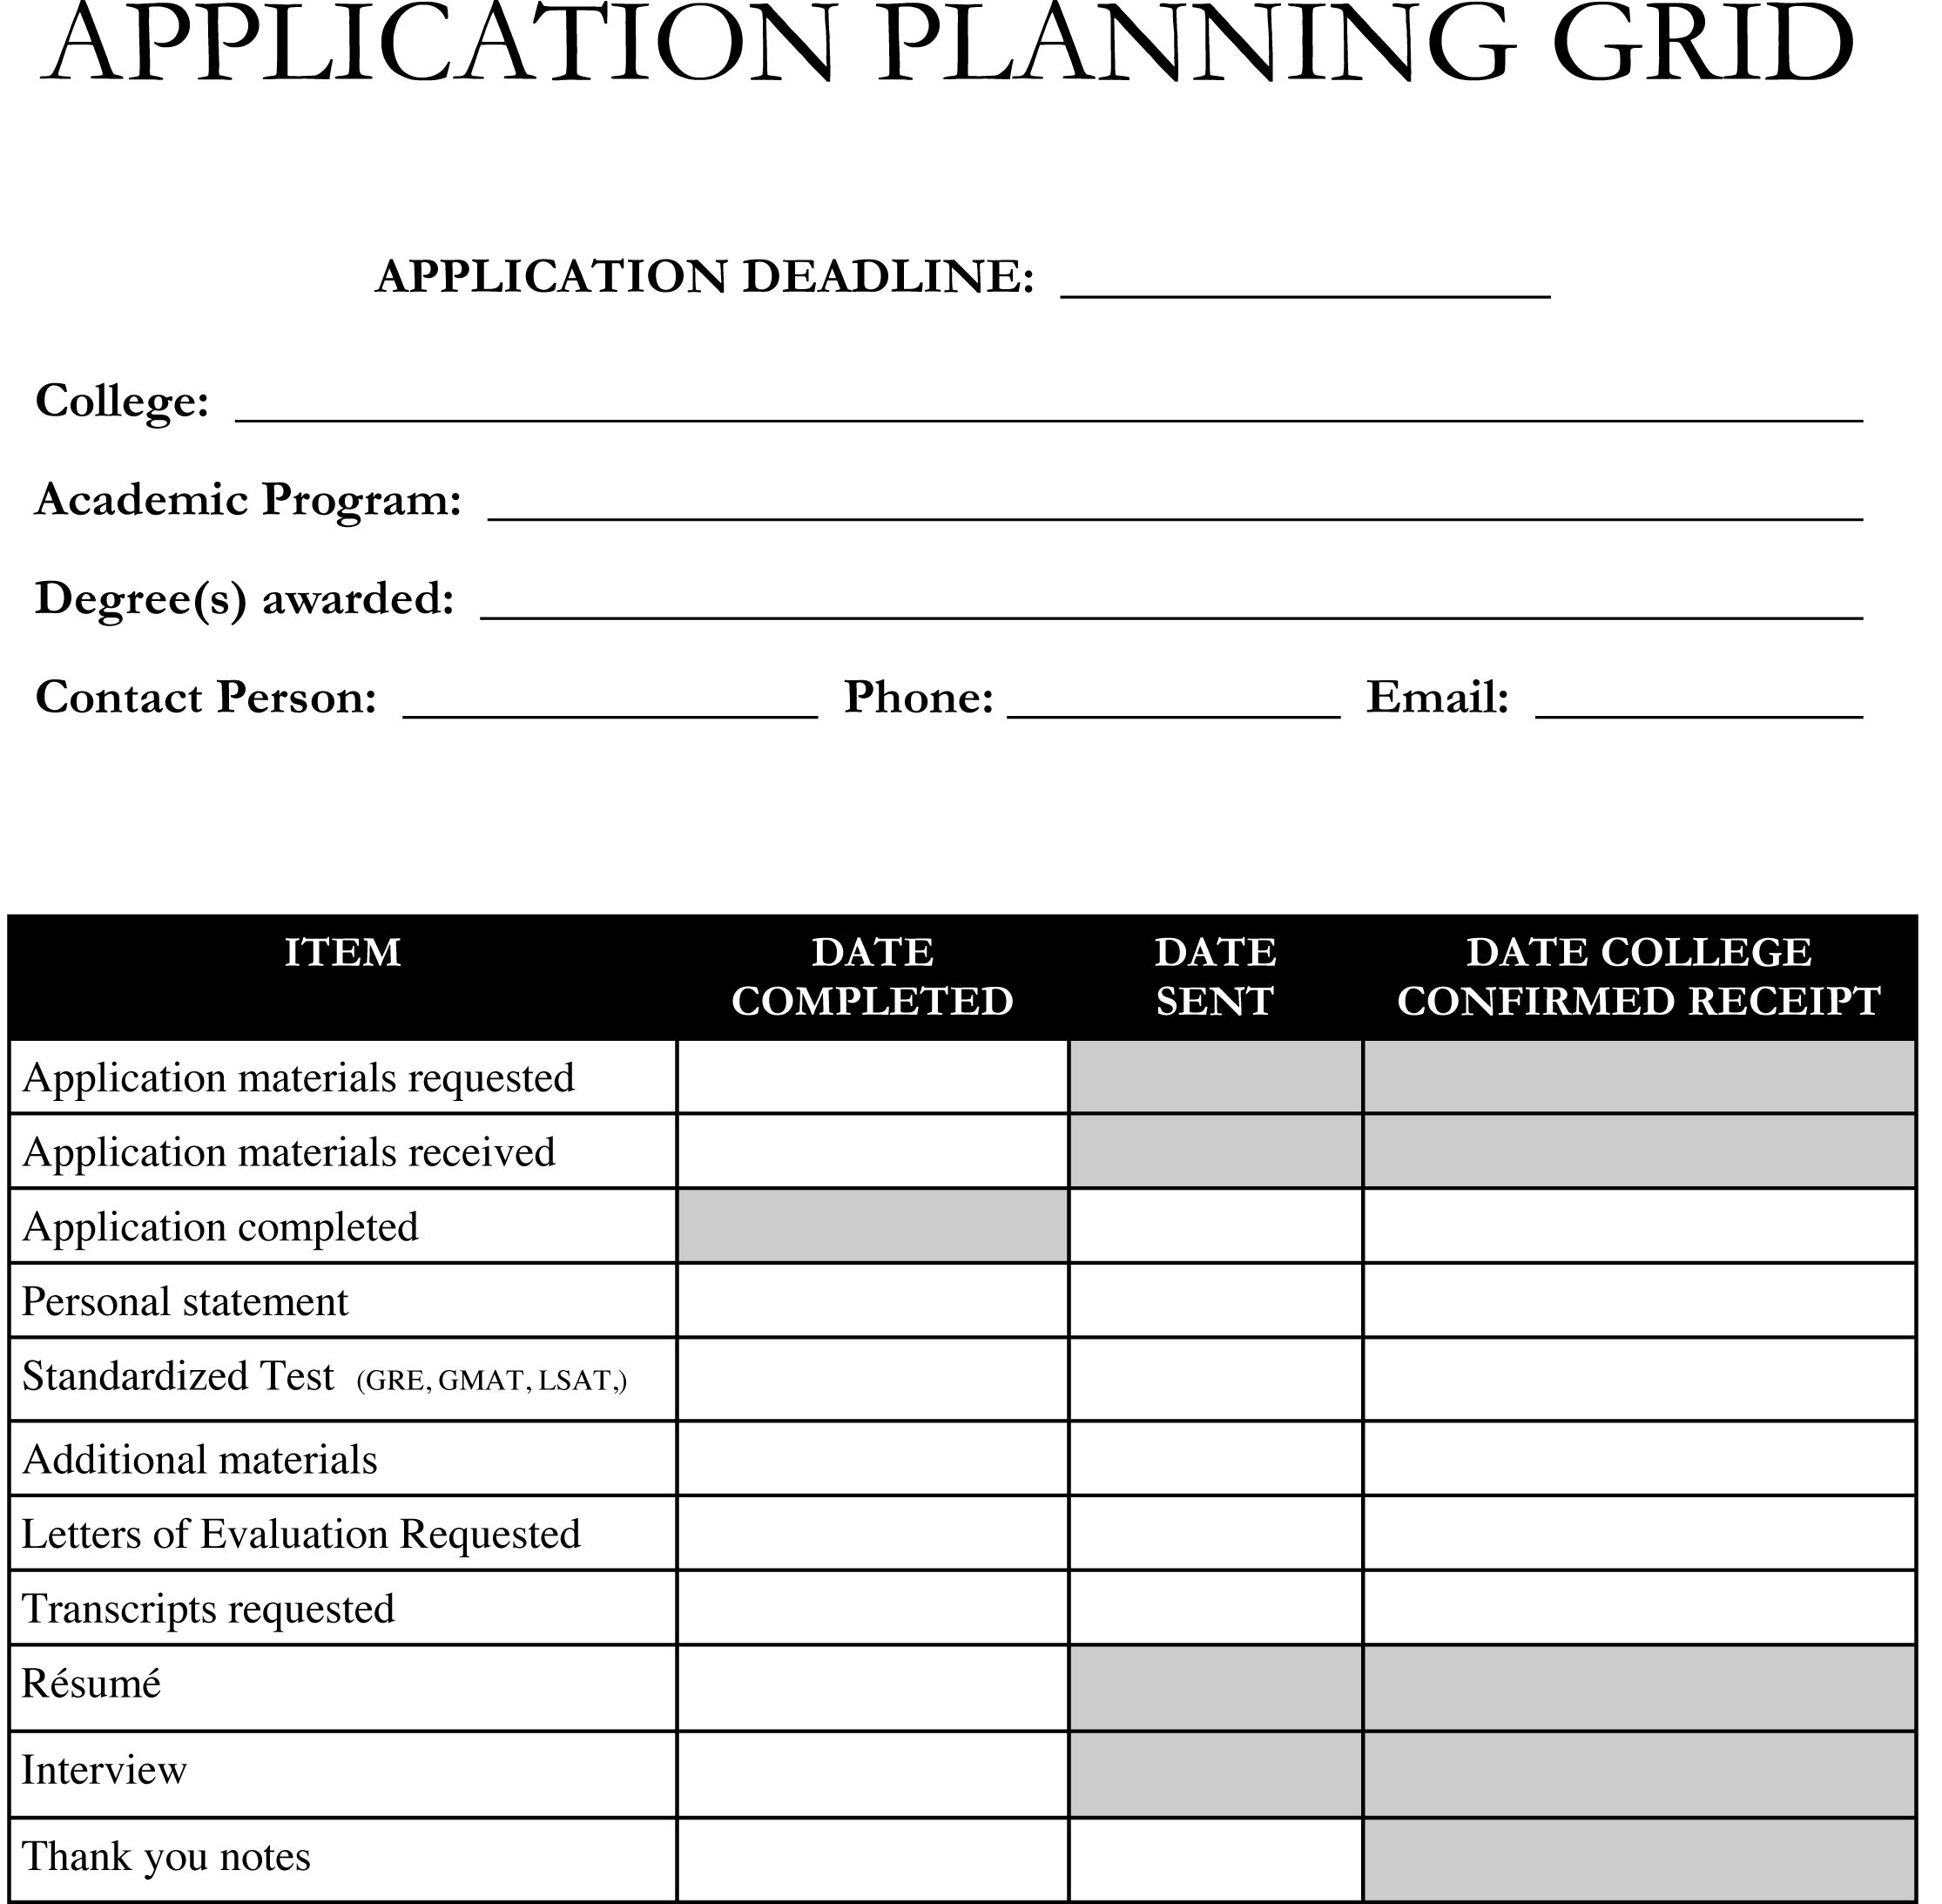 Planning On Applying To Graduate School Use This Application Planning Grid Template To Stay